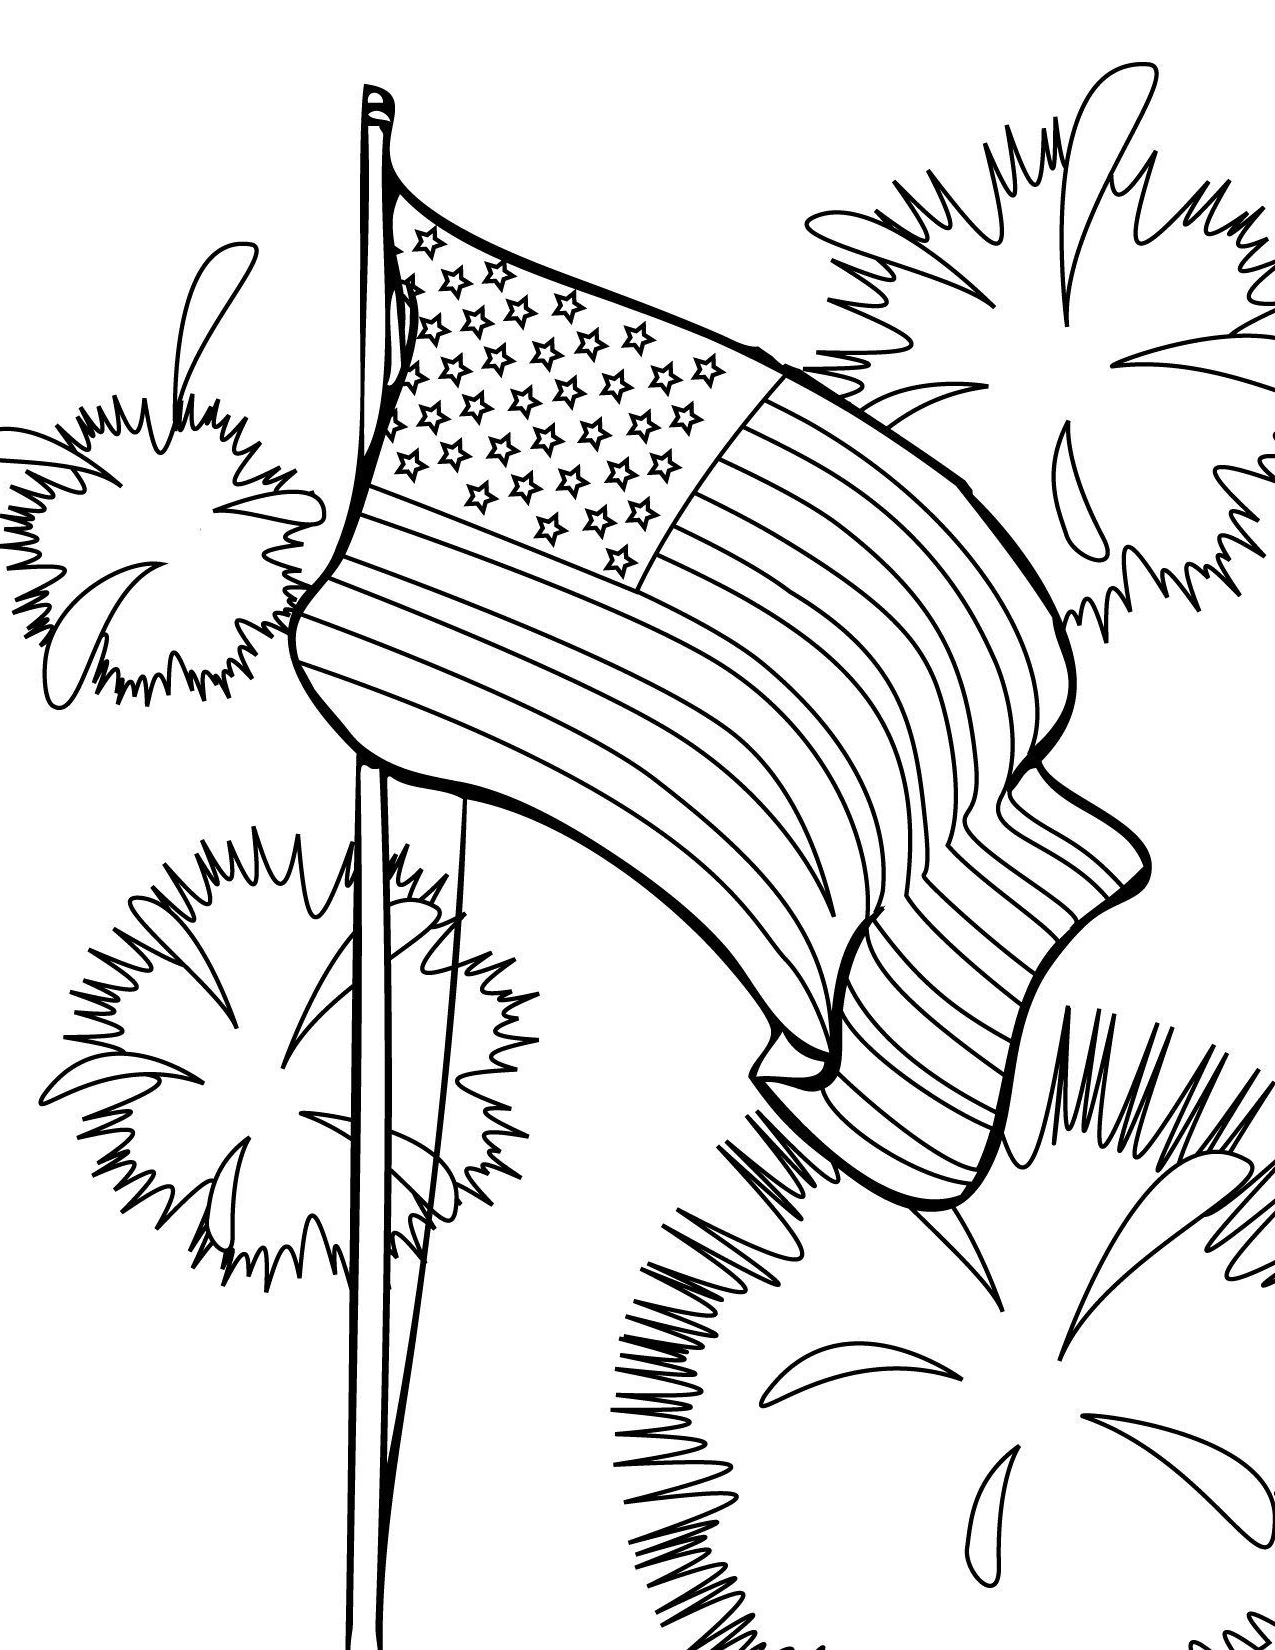 us flag coloring page original american flag coloring page coloring home flag page us coloring